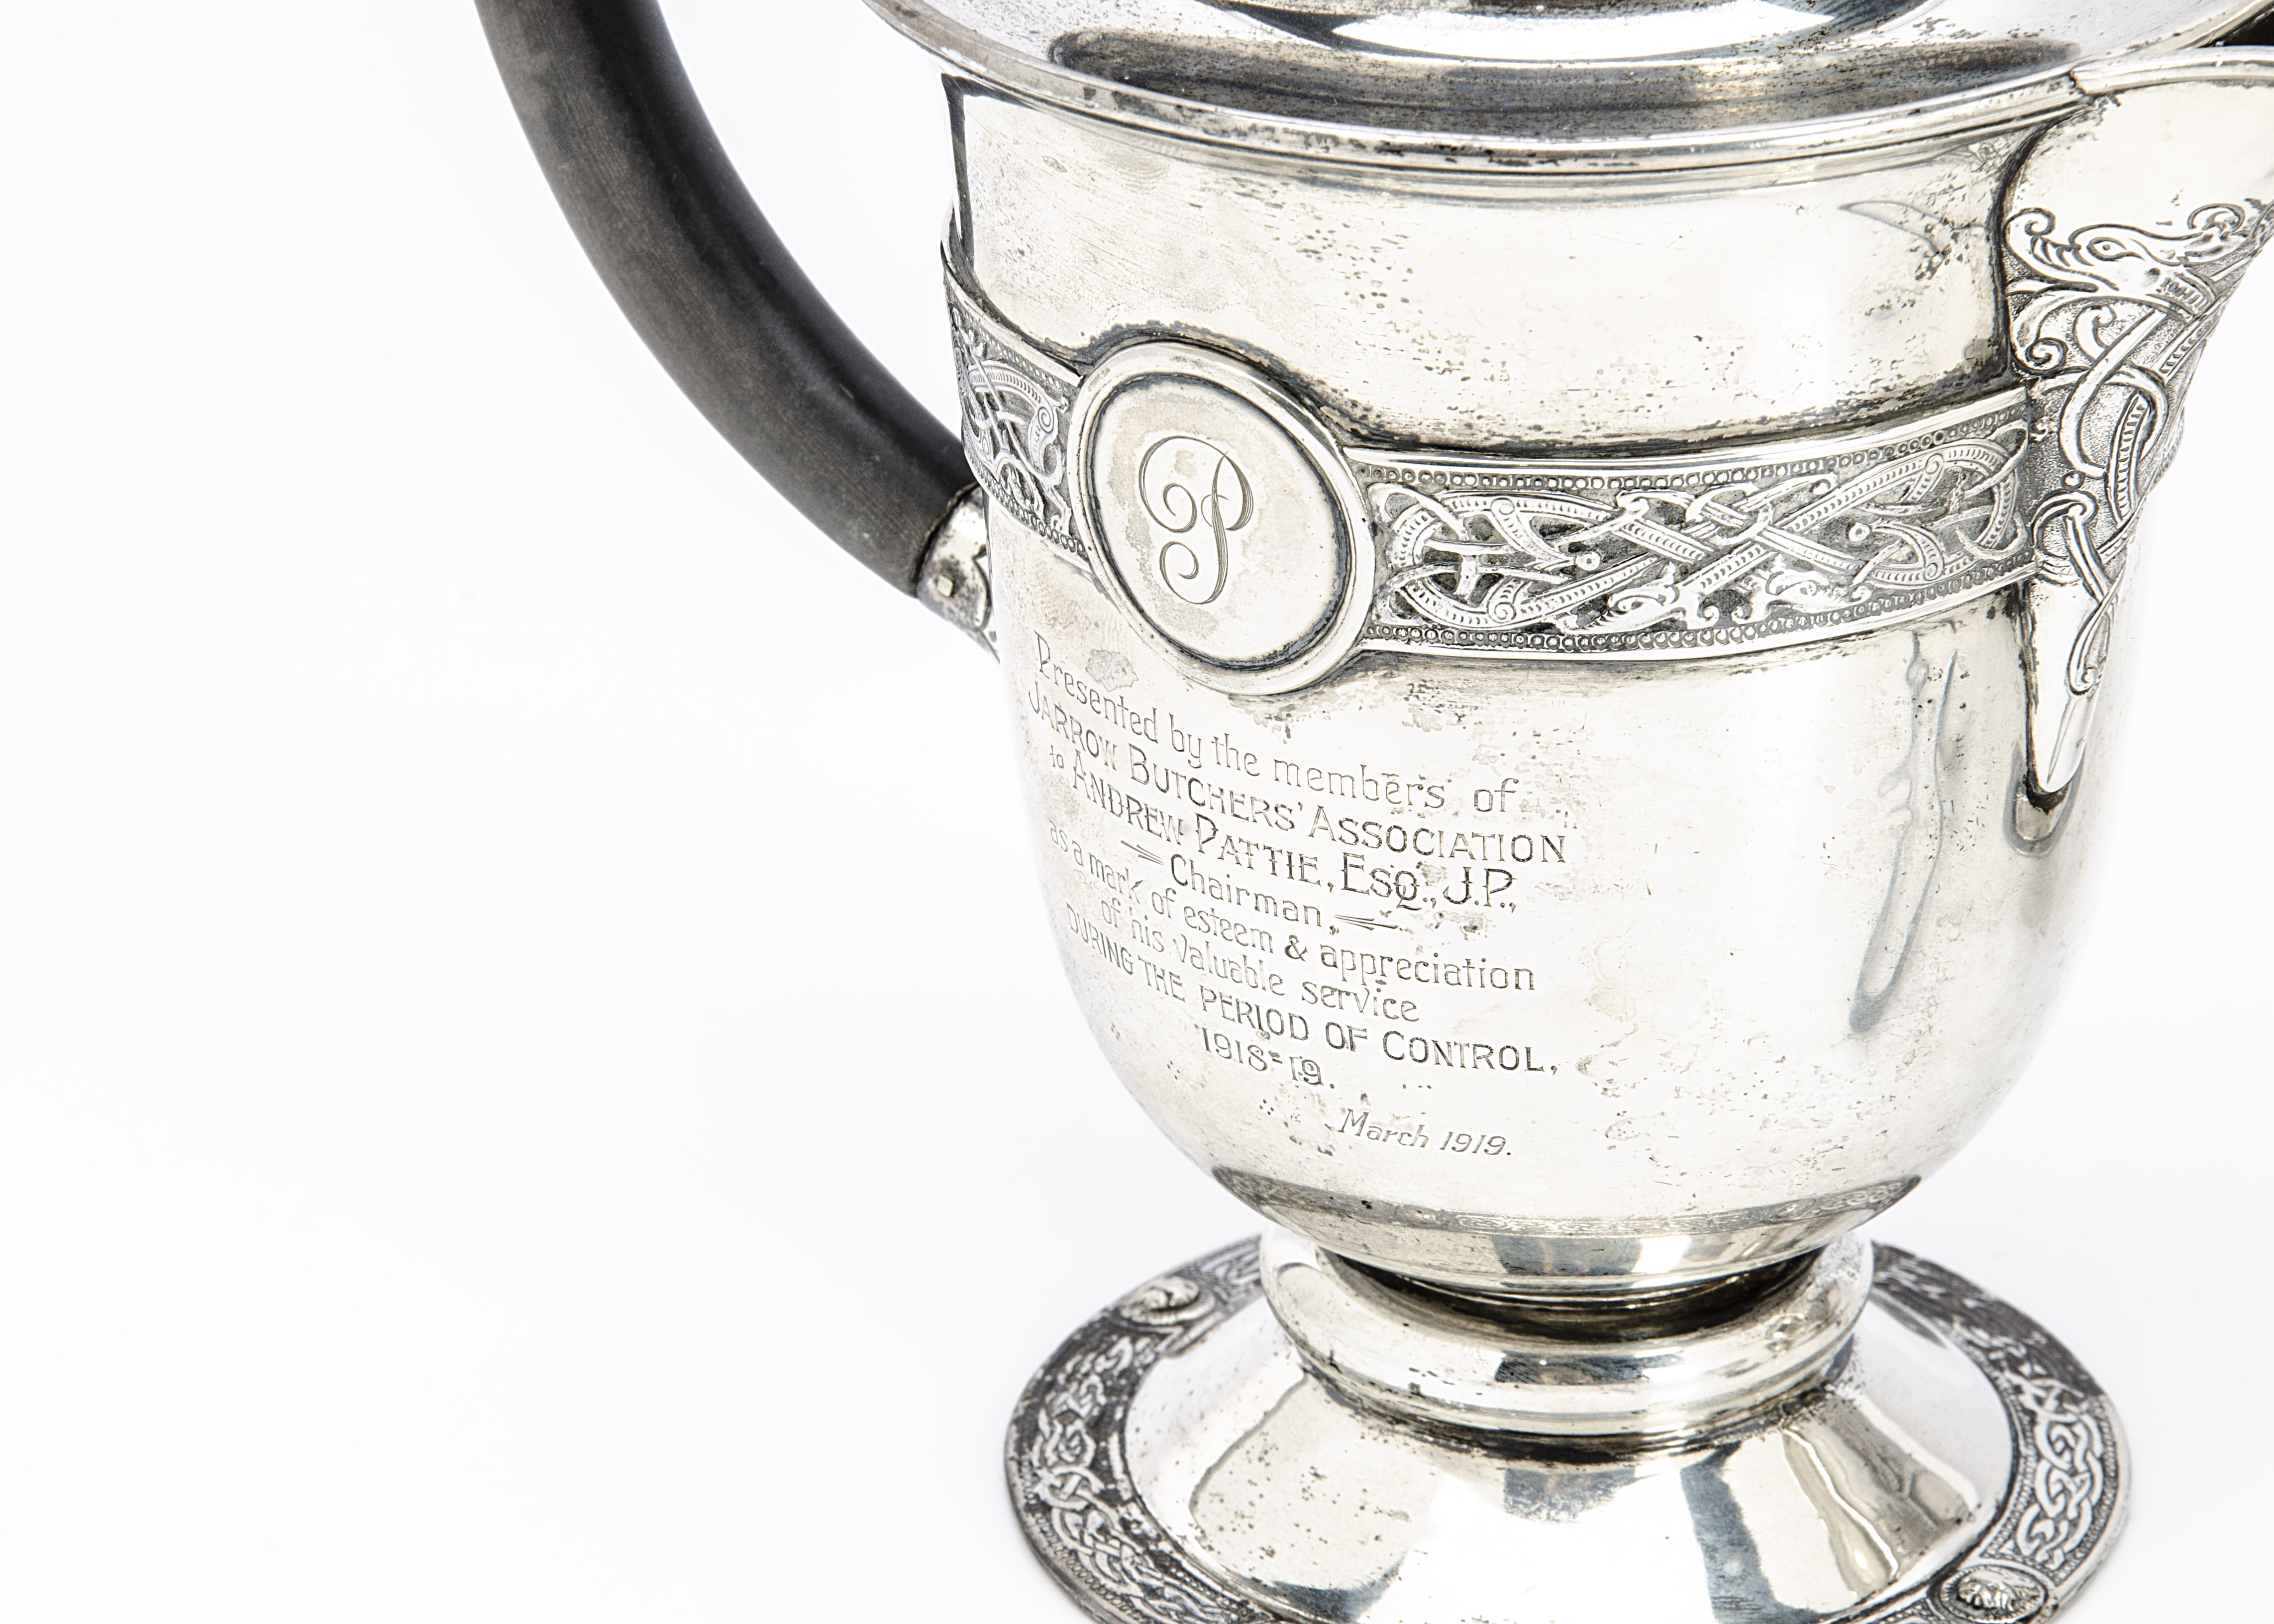 An early 20th Century four piece Irish silver tea service by Reid & Sons of Newcastle, comprising - Image 2 of 2